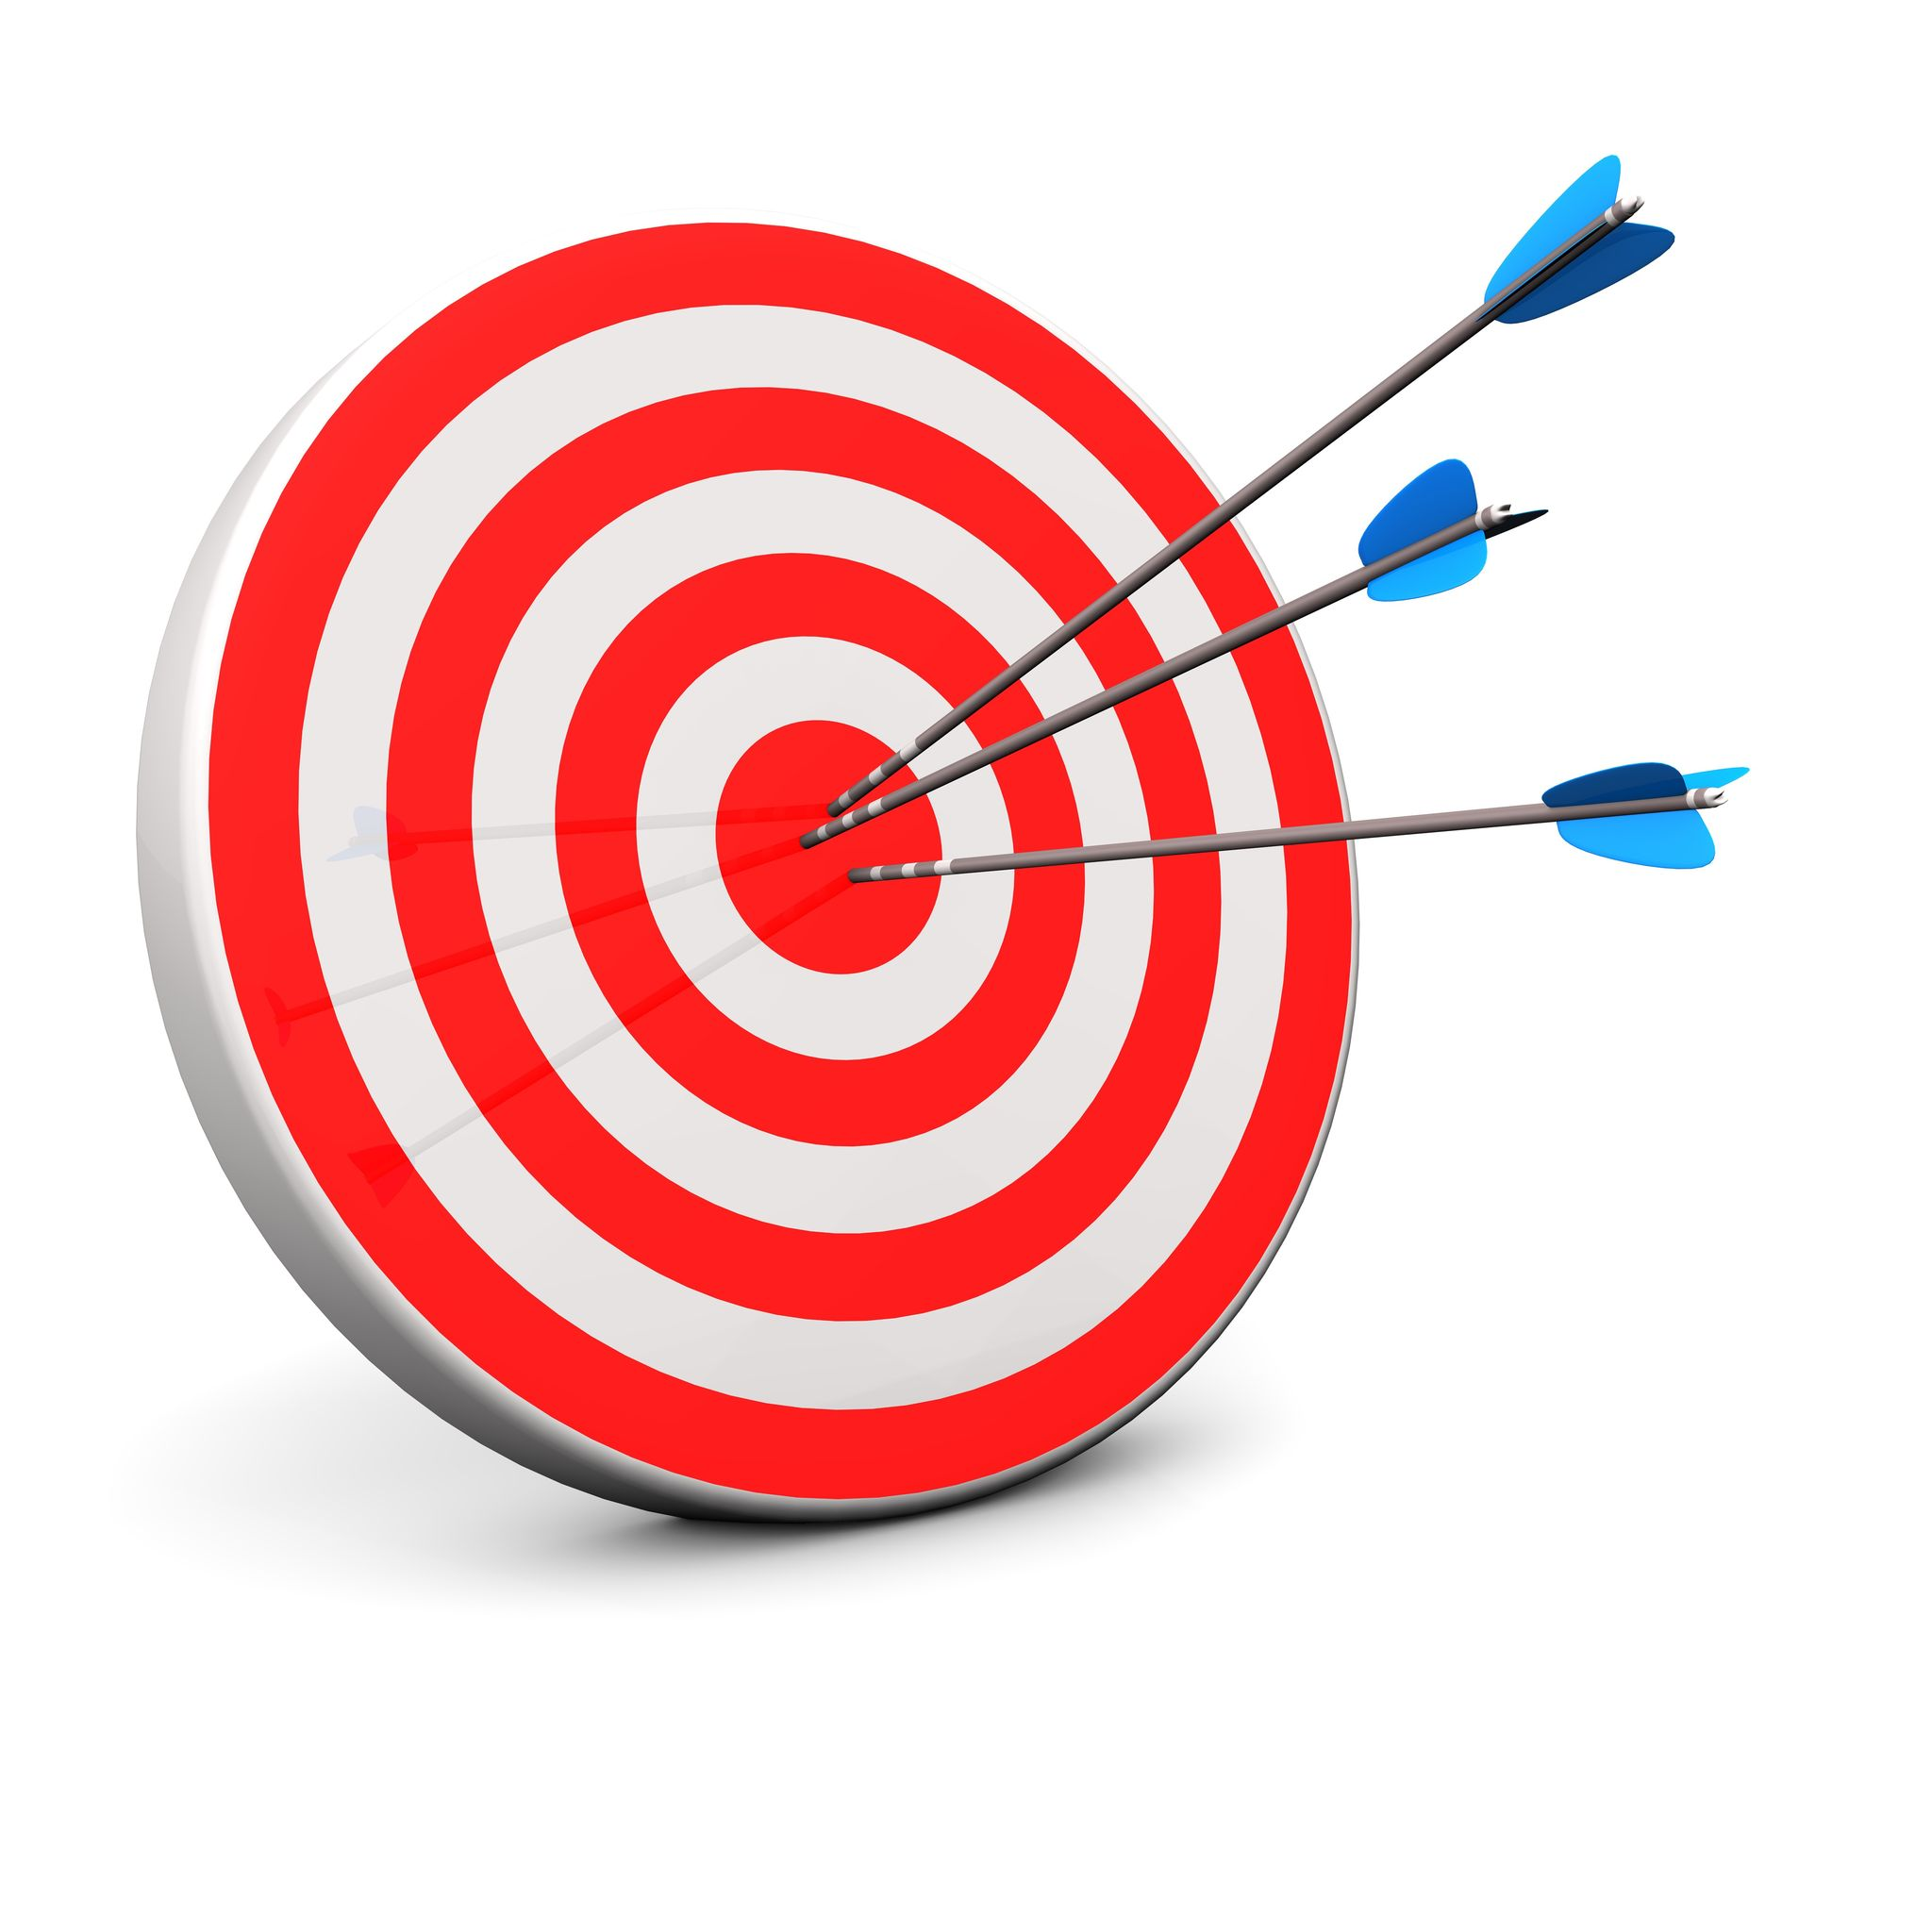 17603135 - red target with 3 arrows in the bullseye